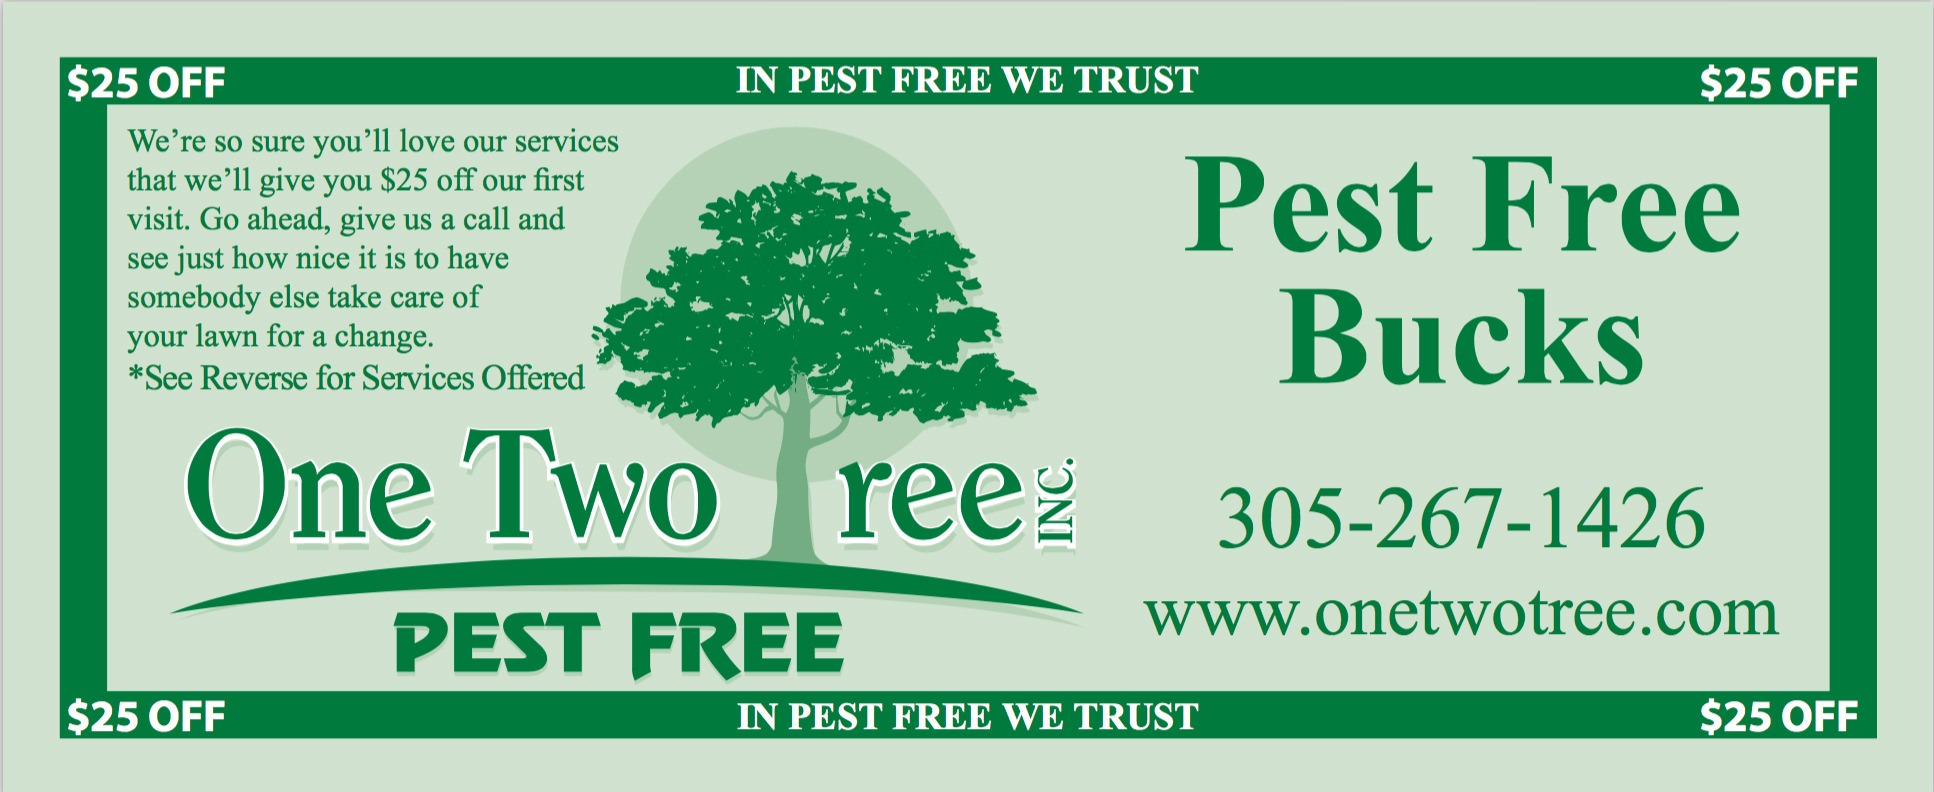 Coupon, One Two Tree customer promo.